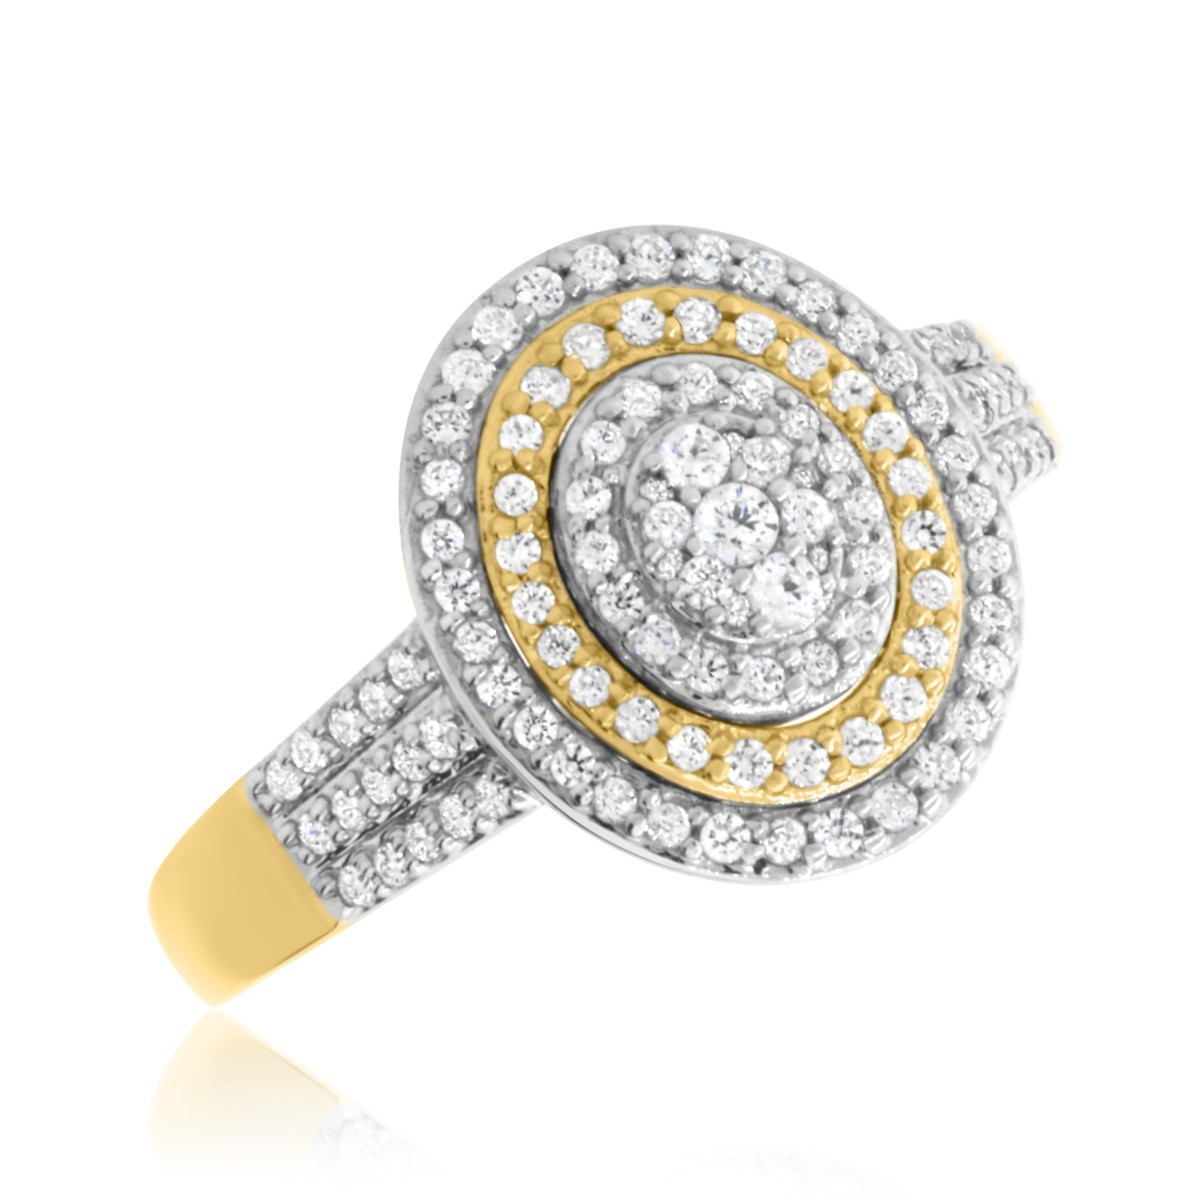 2/3 CT. T.W. Diamond Engagement Ring 14K Yellow Gold